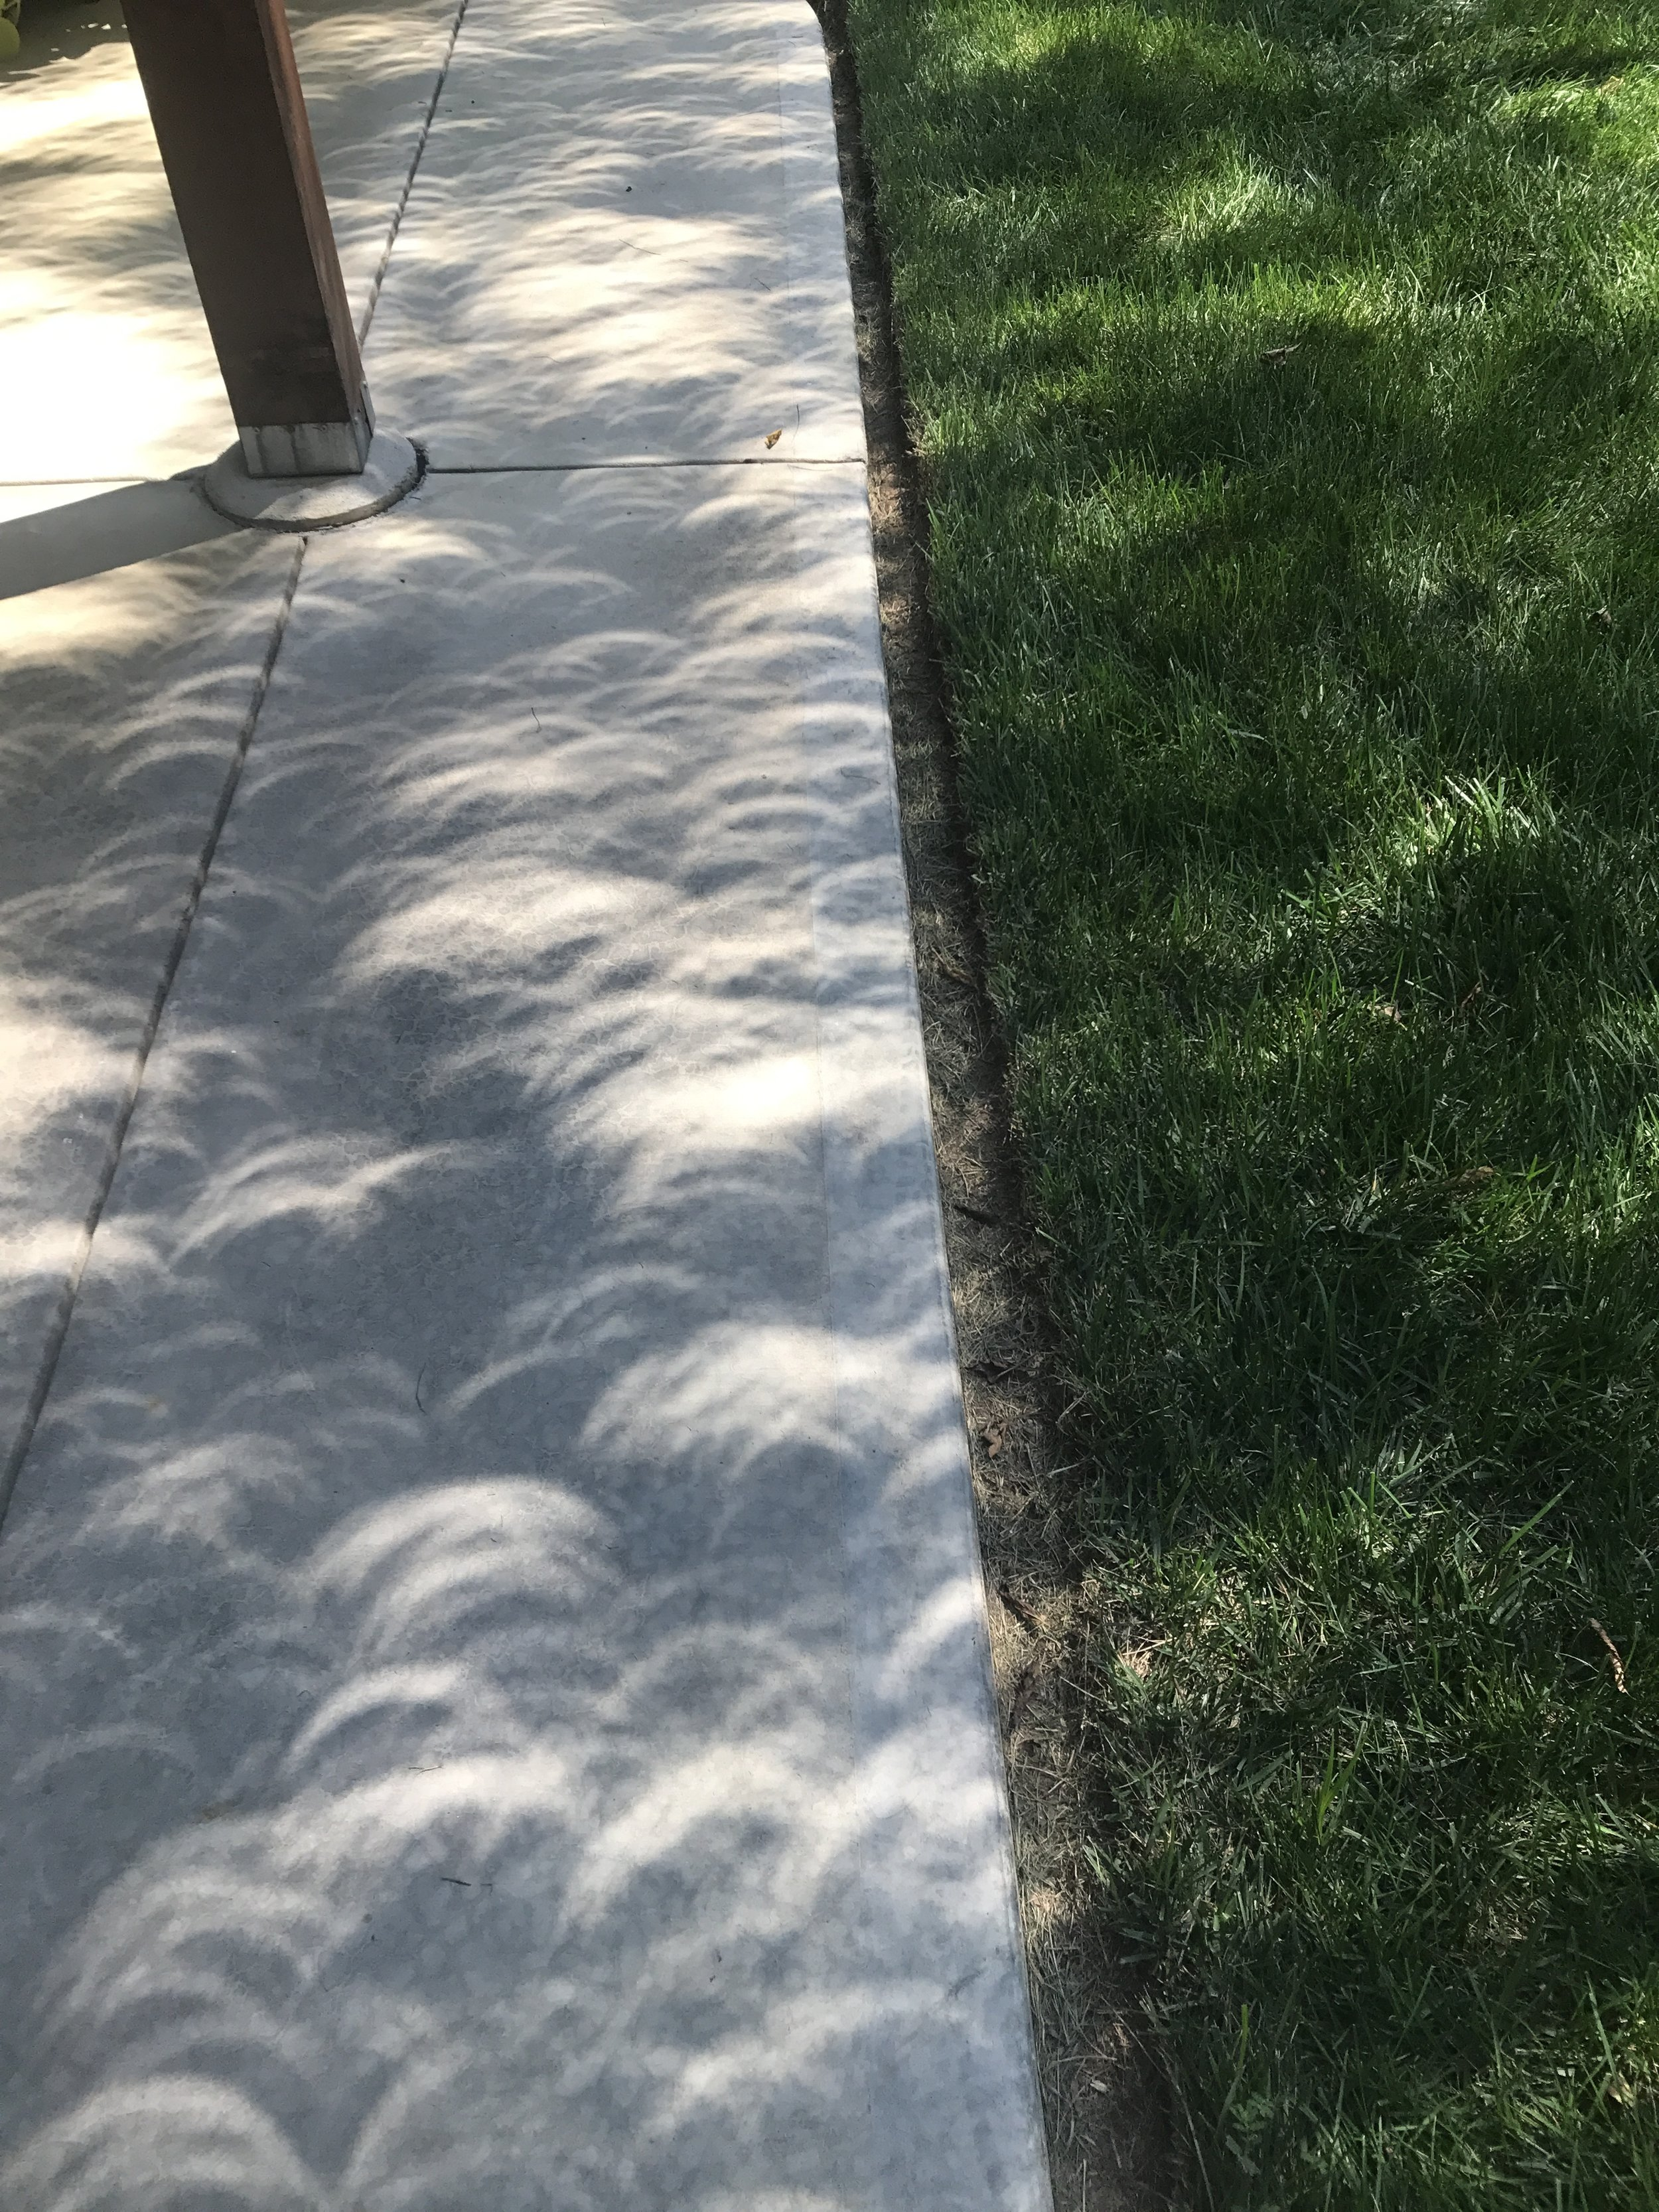 Crescent shaped shadows after totality